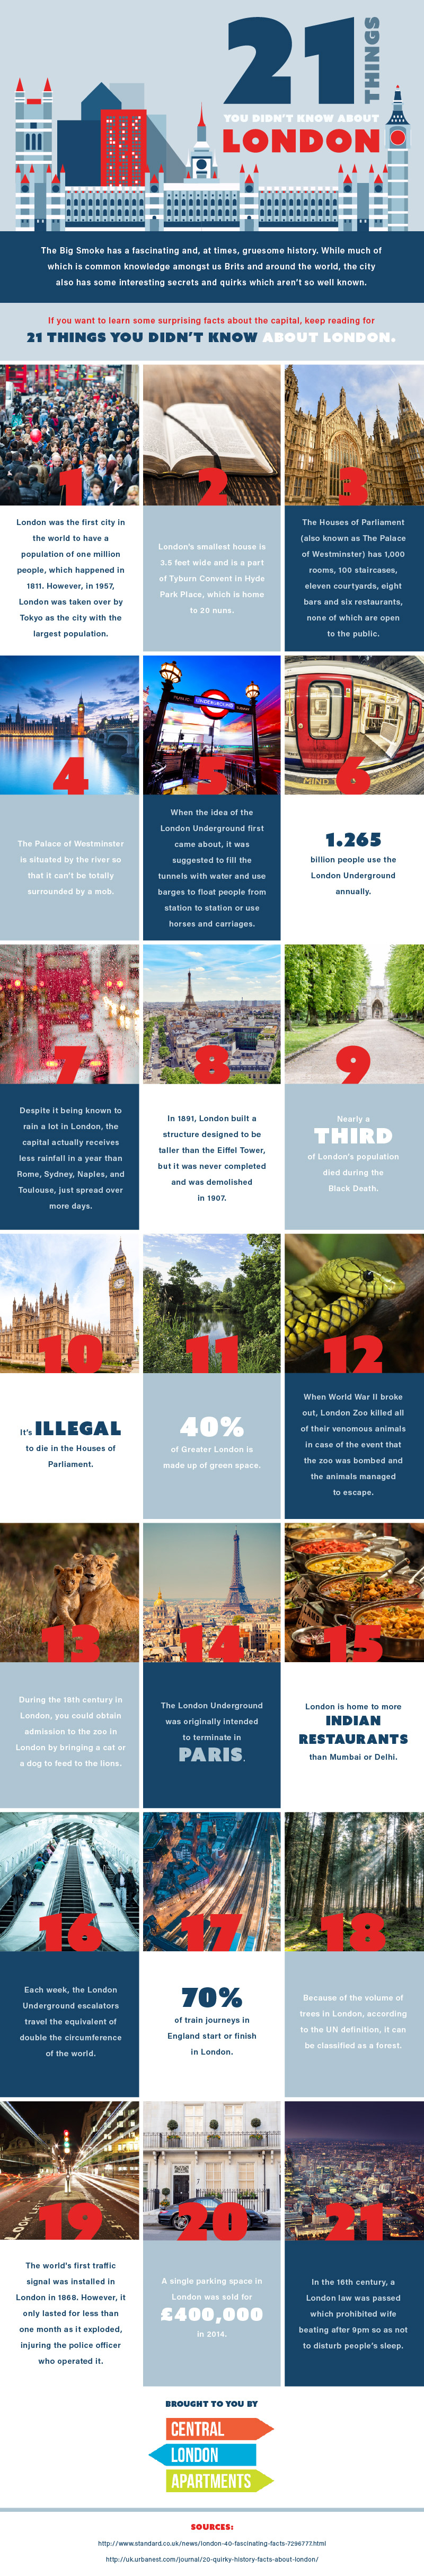 21 Things You Didnt Know About London [Infographic]